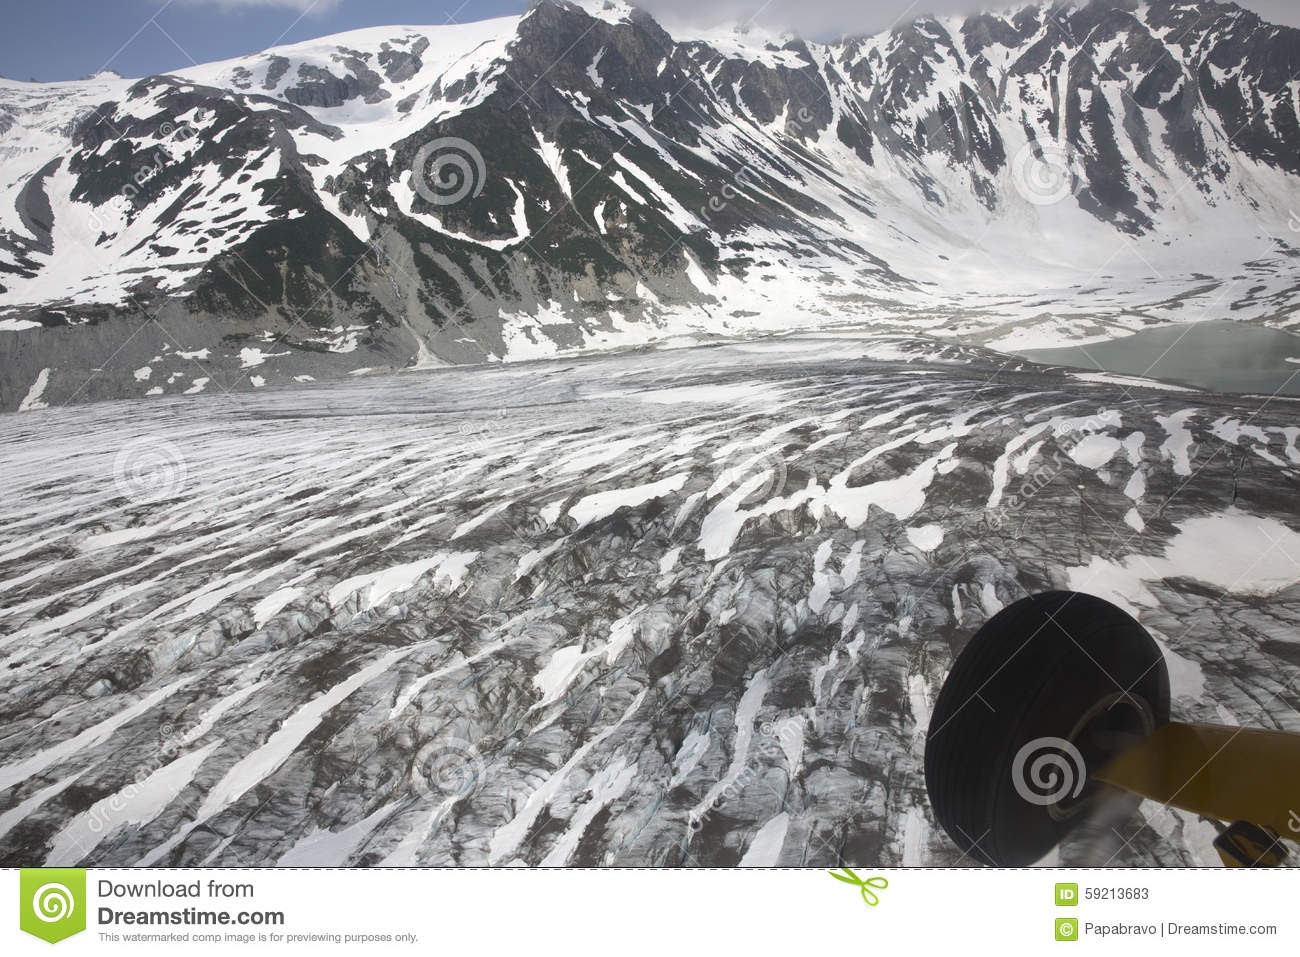 More similar stock images of ` Aerial view of alaskan wilderness `